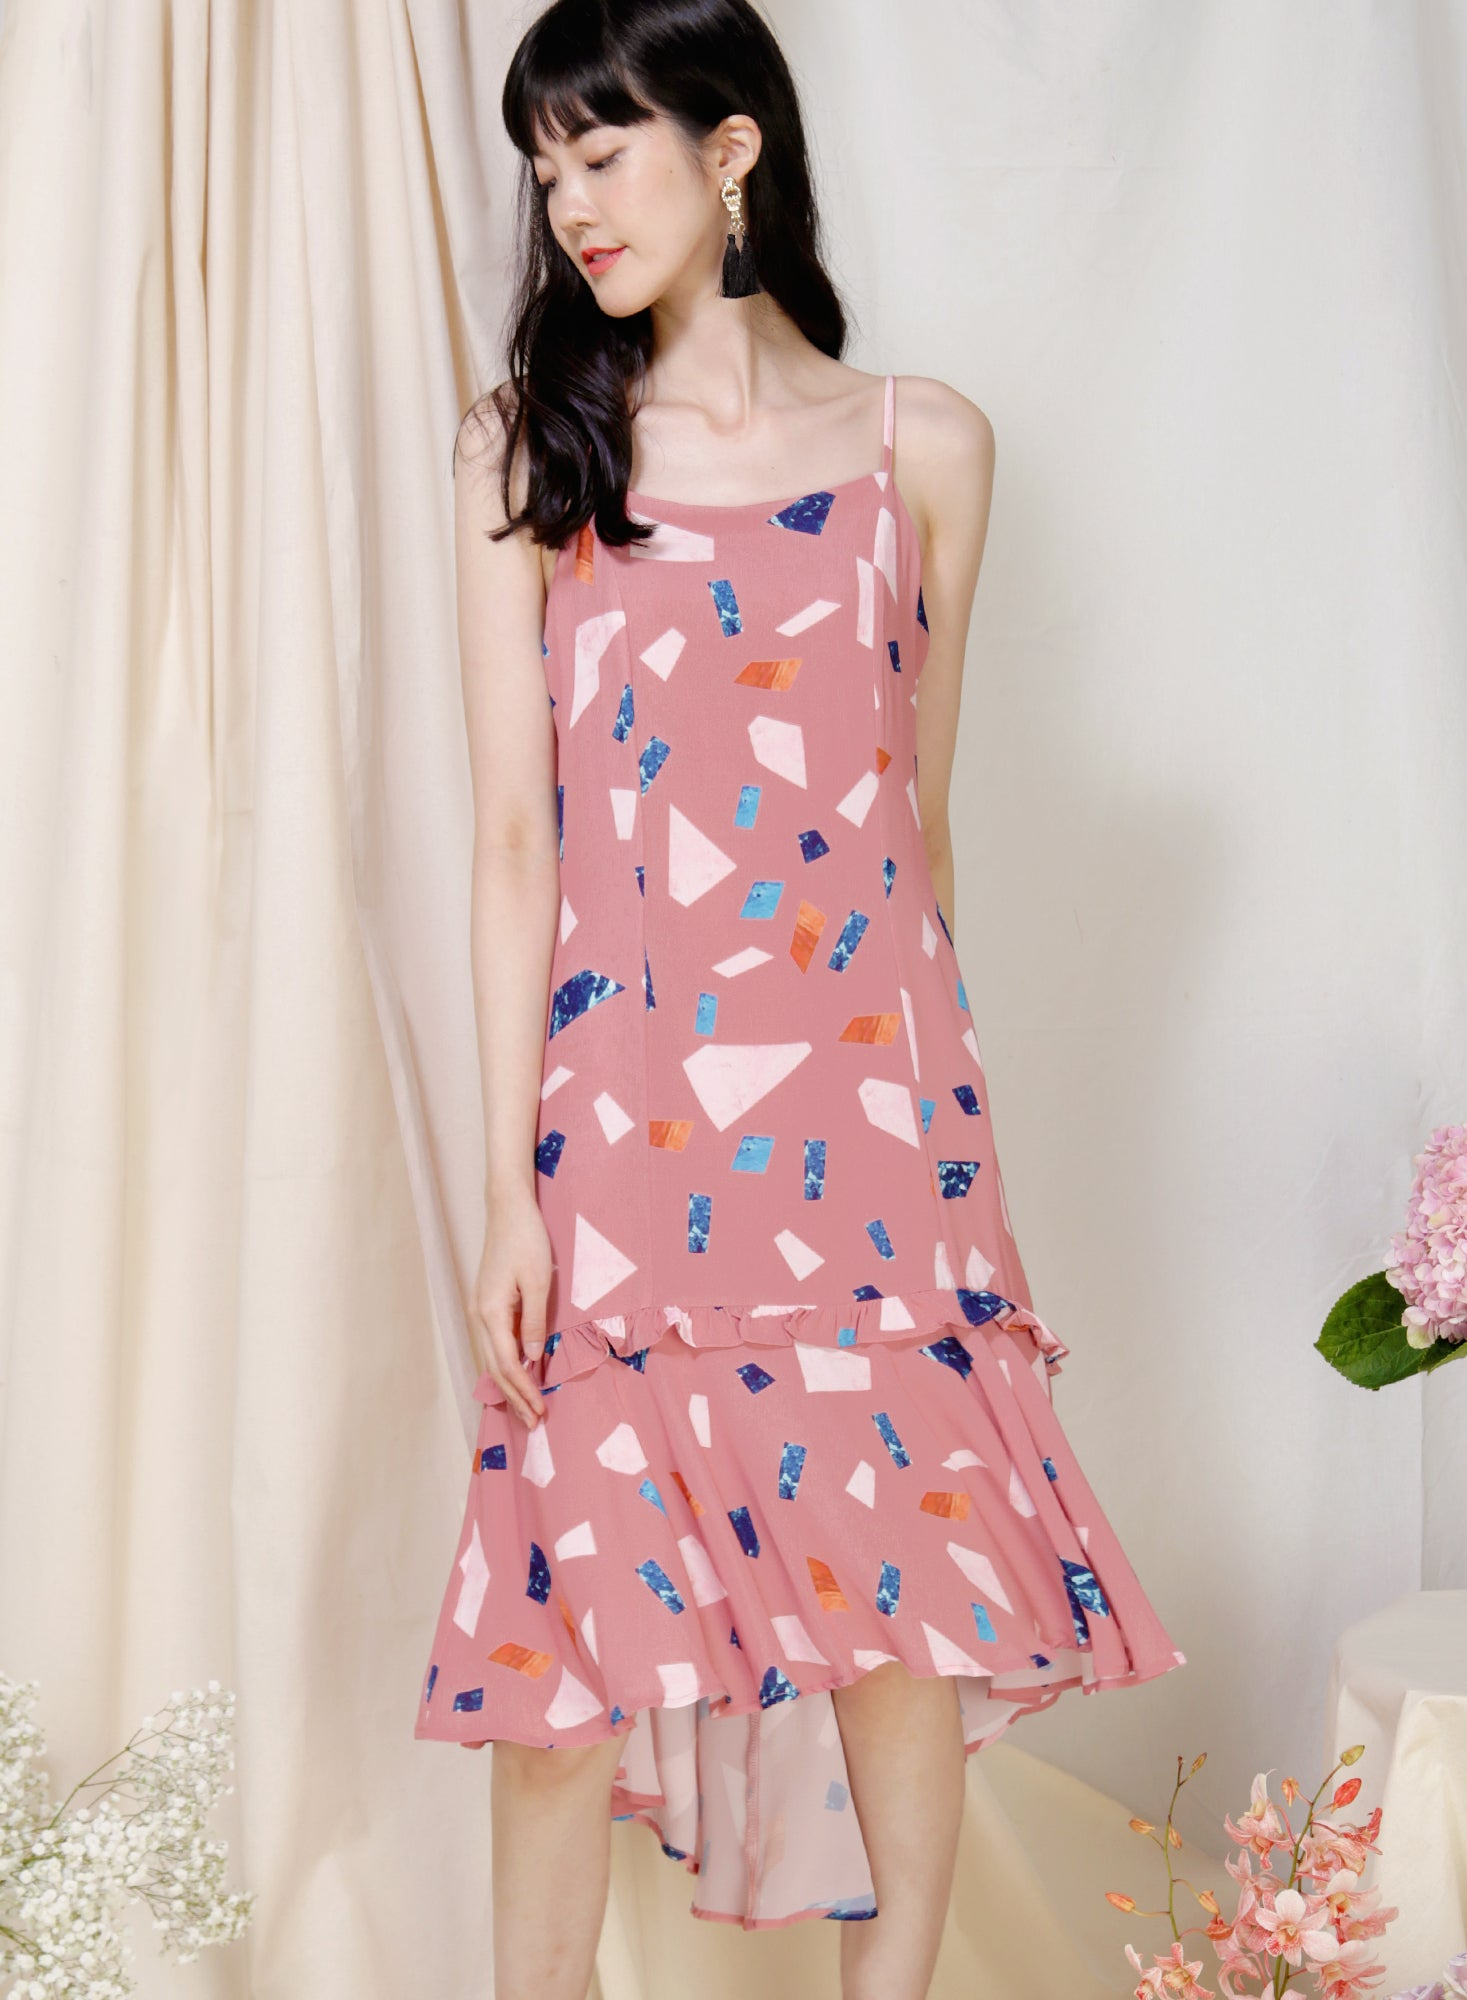 Vivid Frill Ruffle Hem Dress (Rose Terrazzo) at $ 30.50 only sold at And Well Dressed Online Fashion Store Singapore